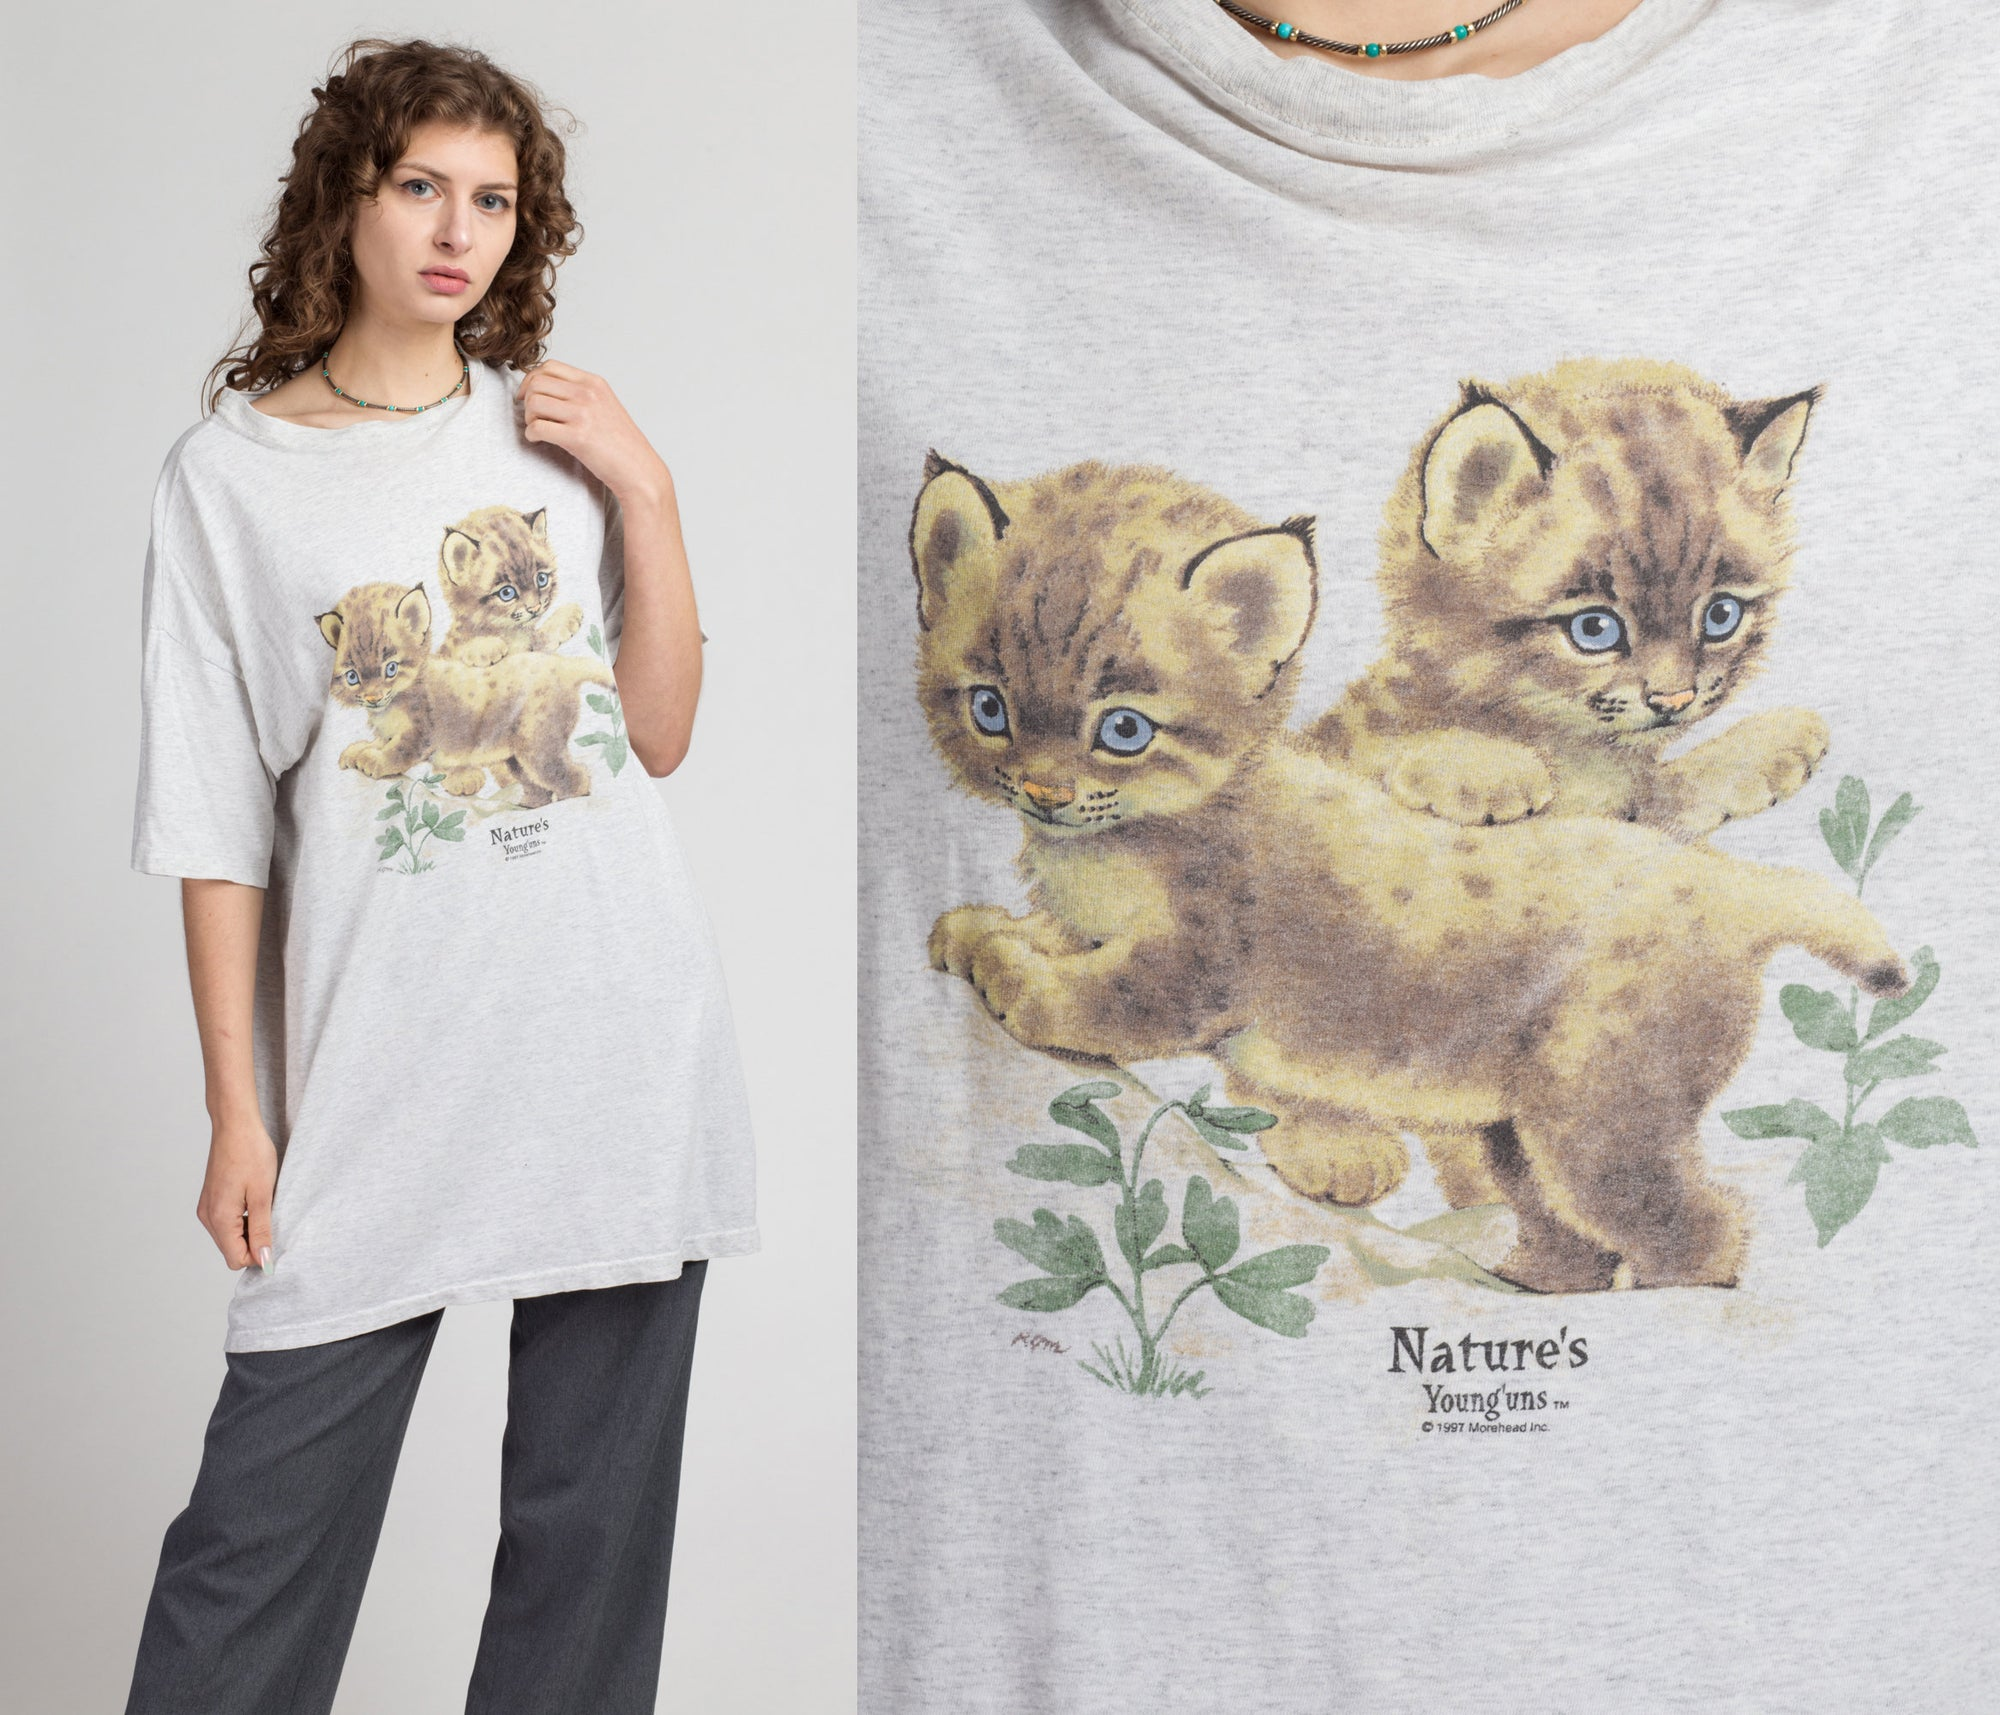 90s Kitten Graphic T Shirt - One Size | Vintage Cat Lover Grey Oversize Animal Tee